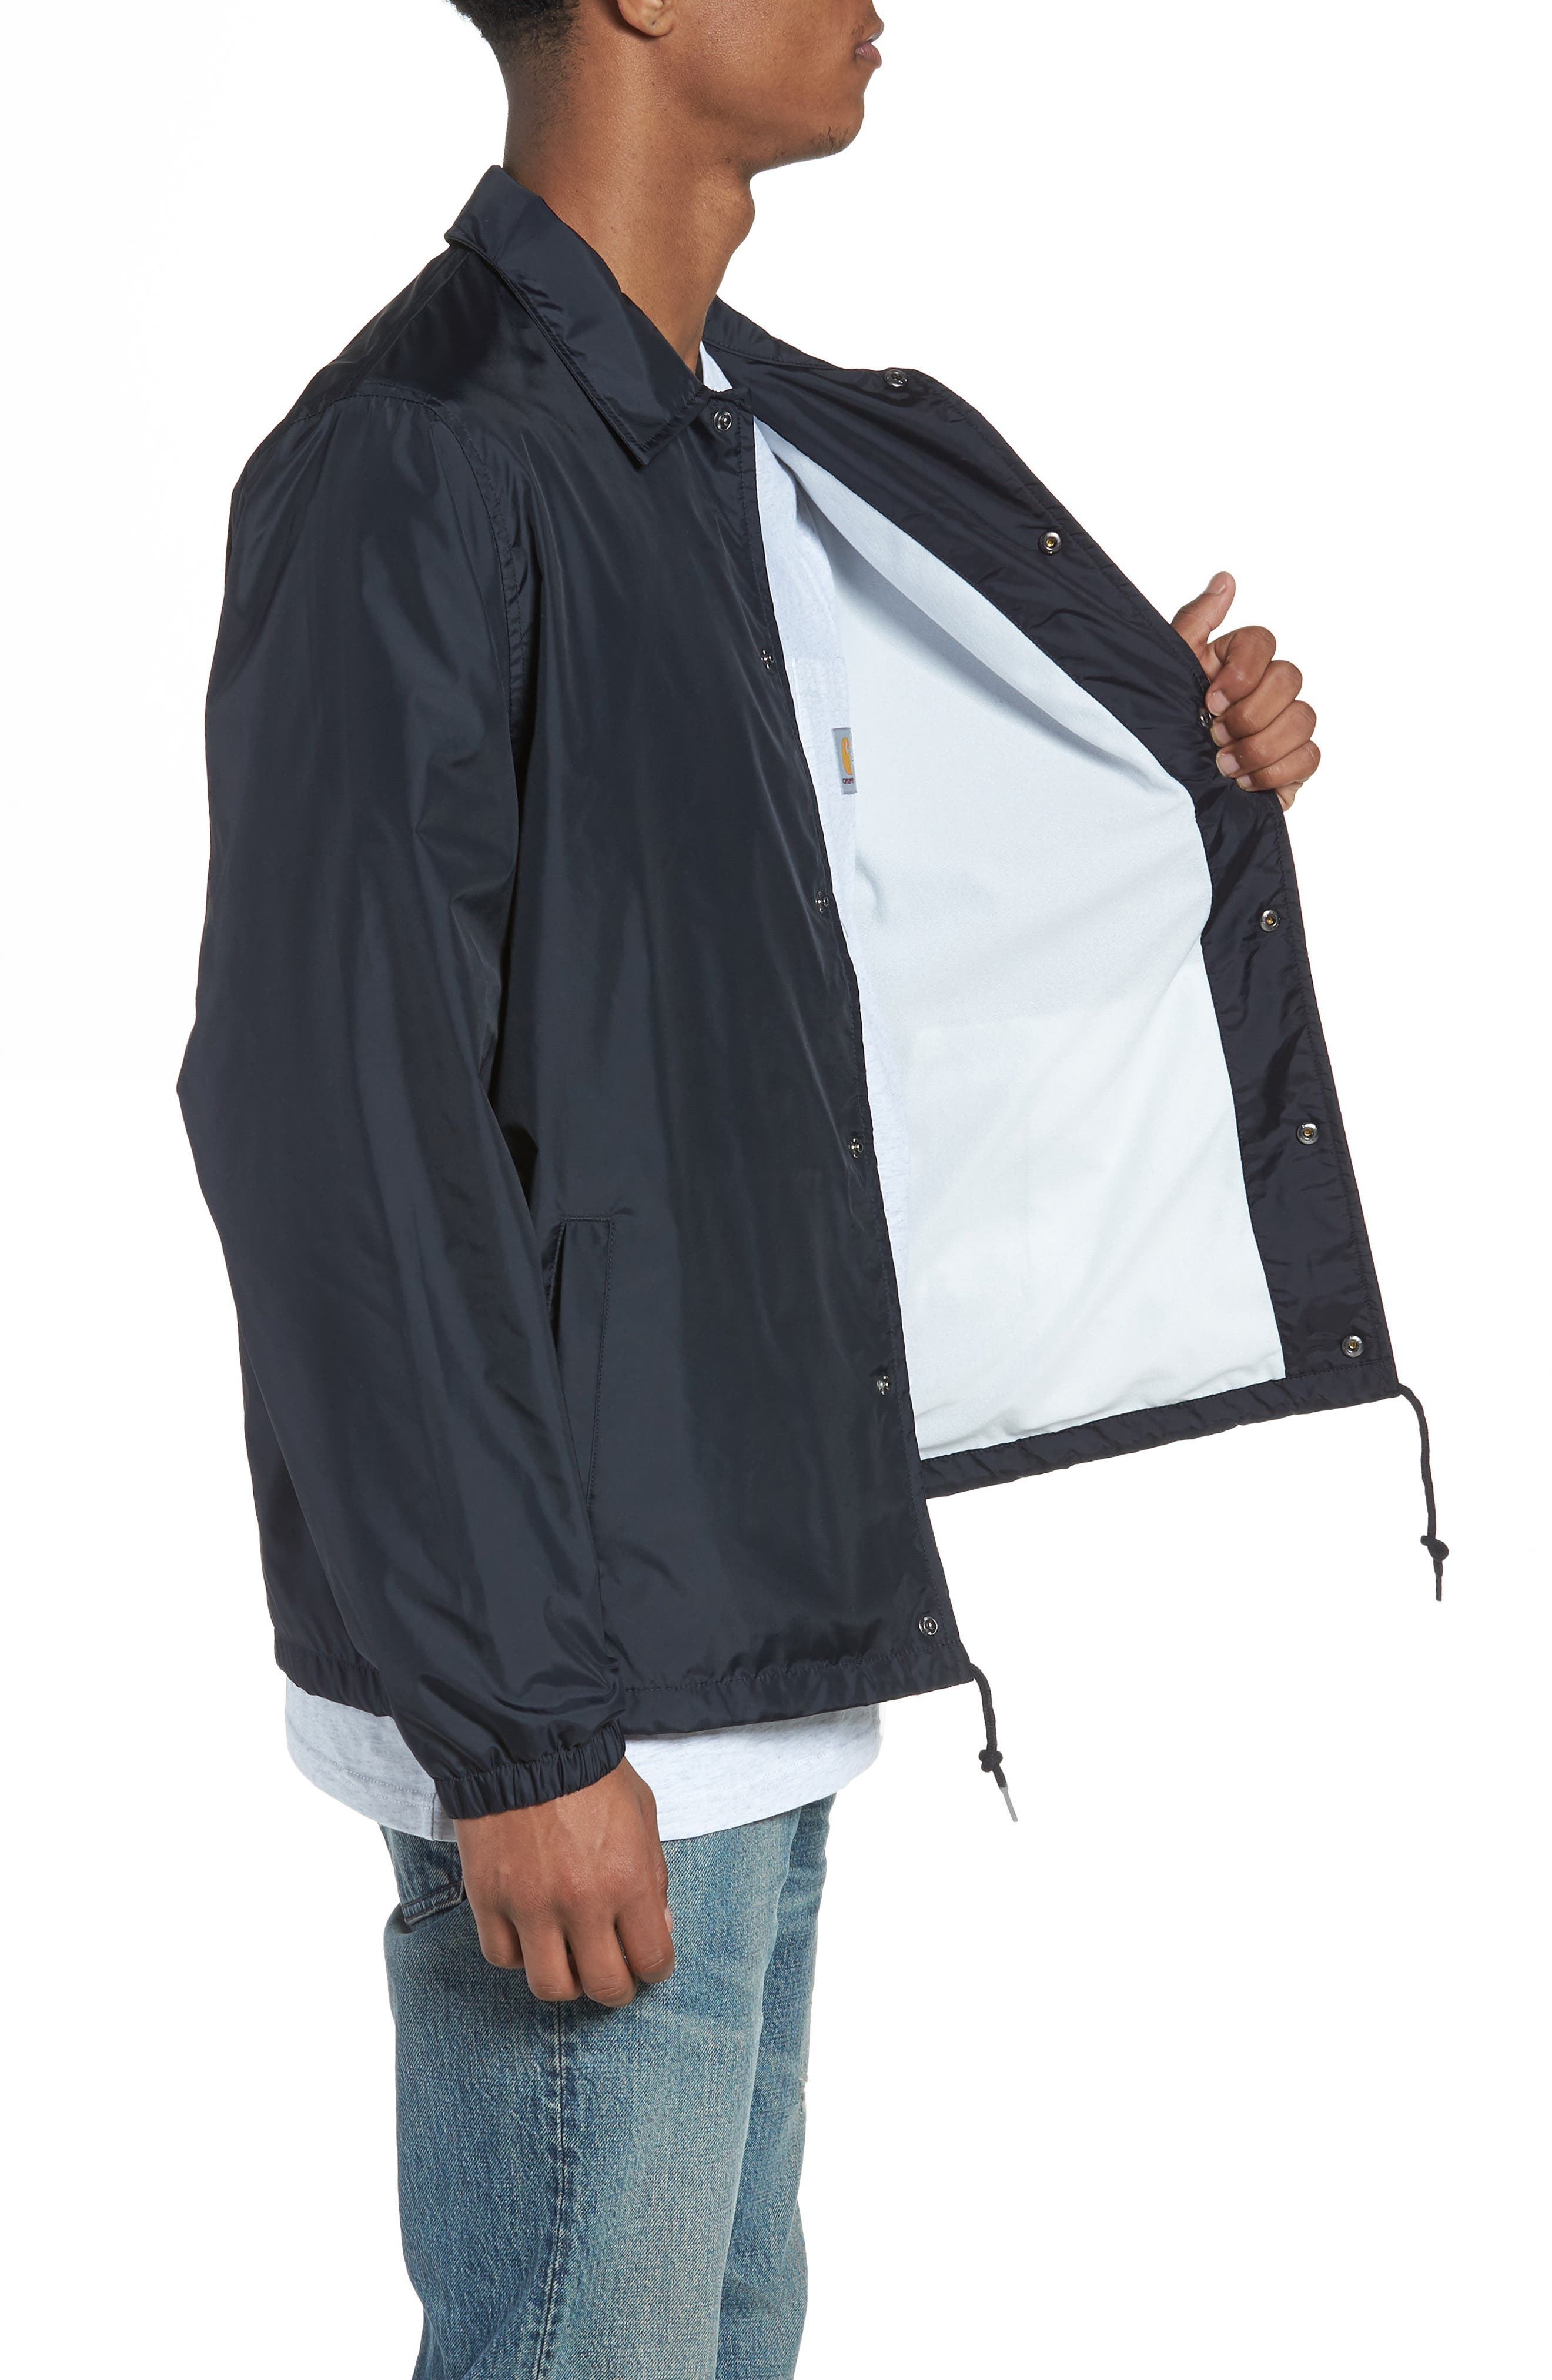 Sport Coach's Jacket,                             Alternate thumbnail 3, color,